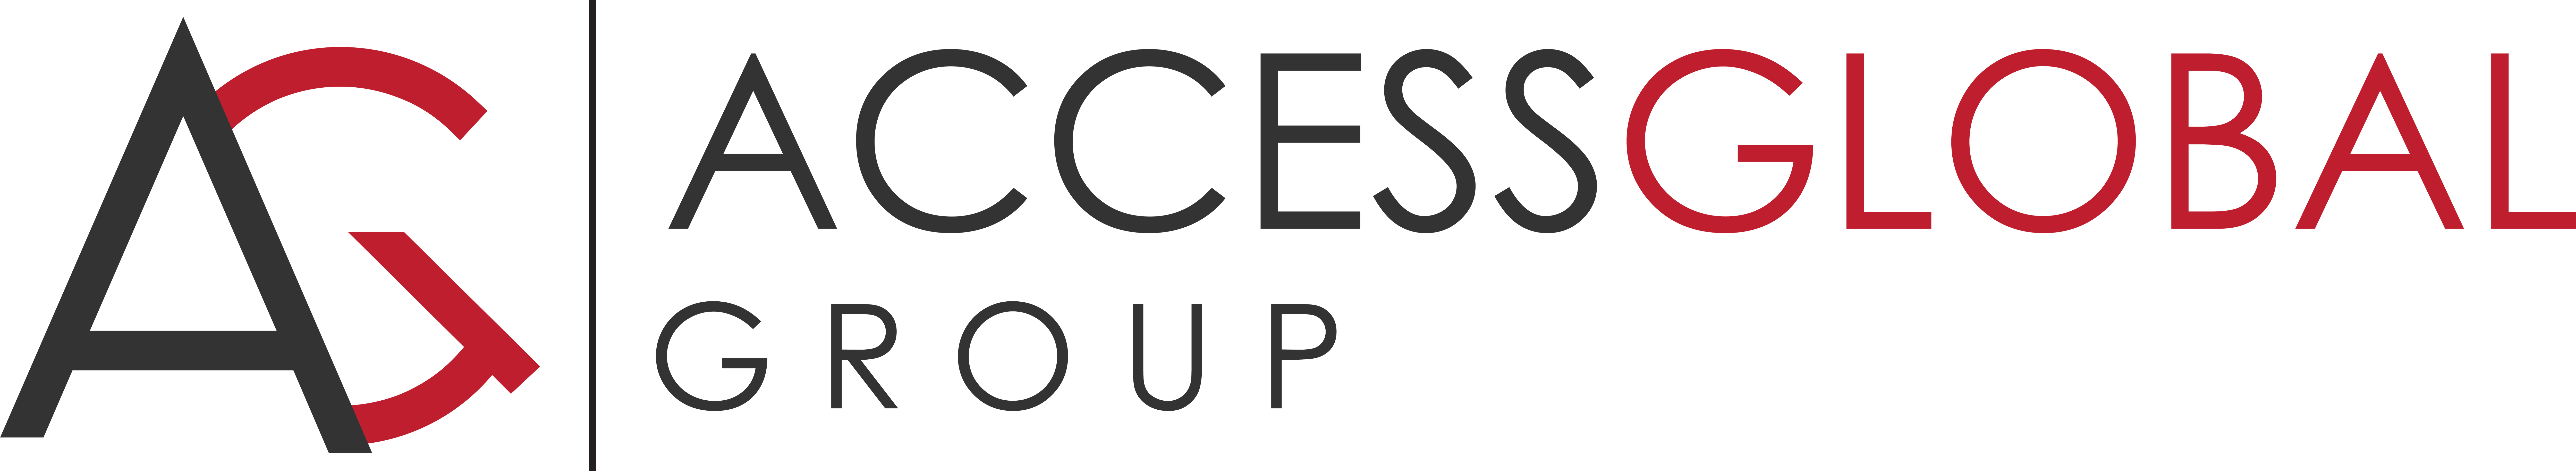 Access Global Group